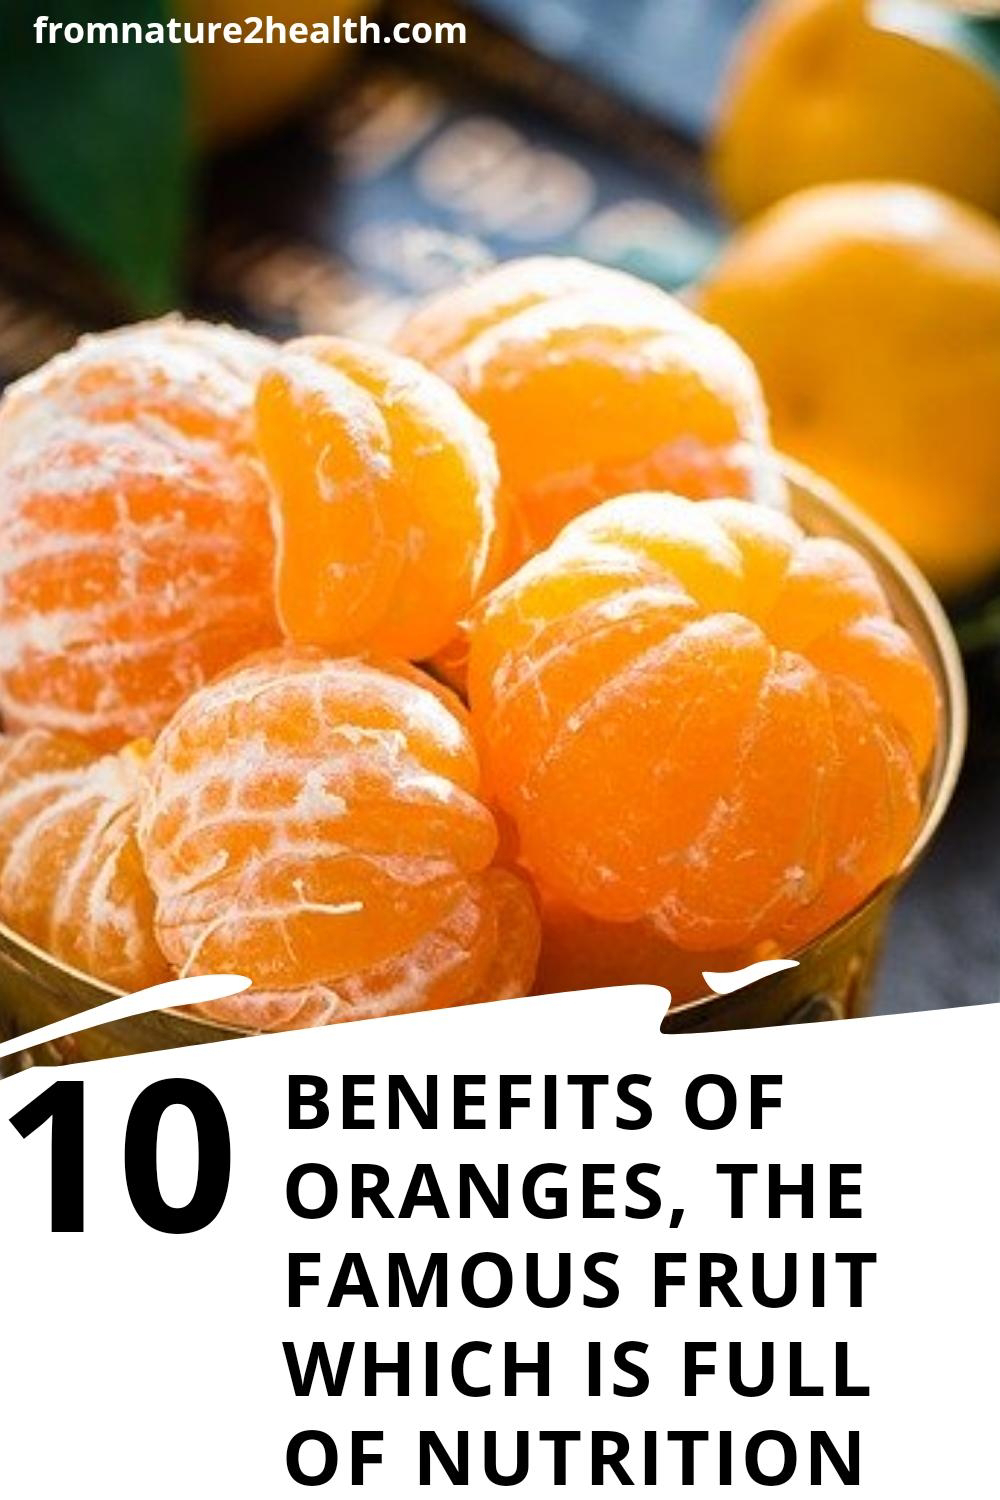 10 Benefits of Oranges, the Famous Fruit which is Full of Nutrition